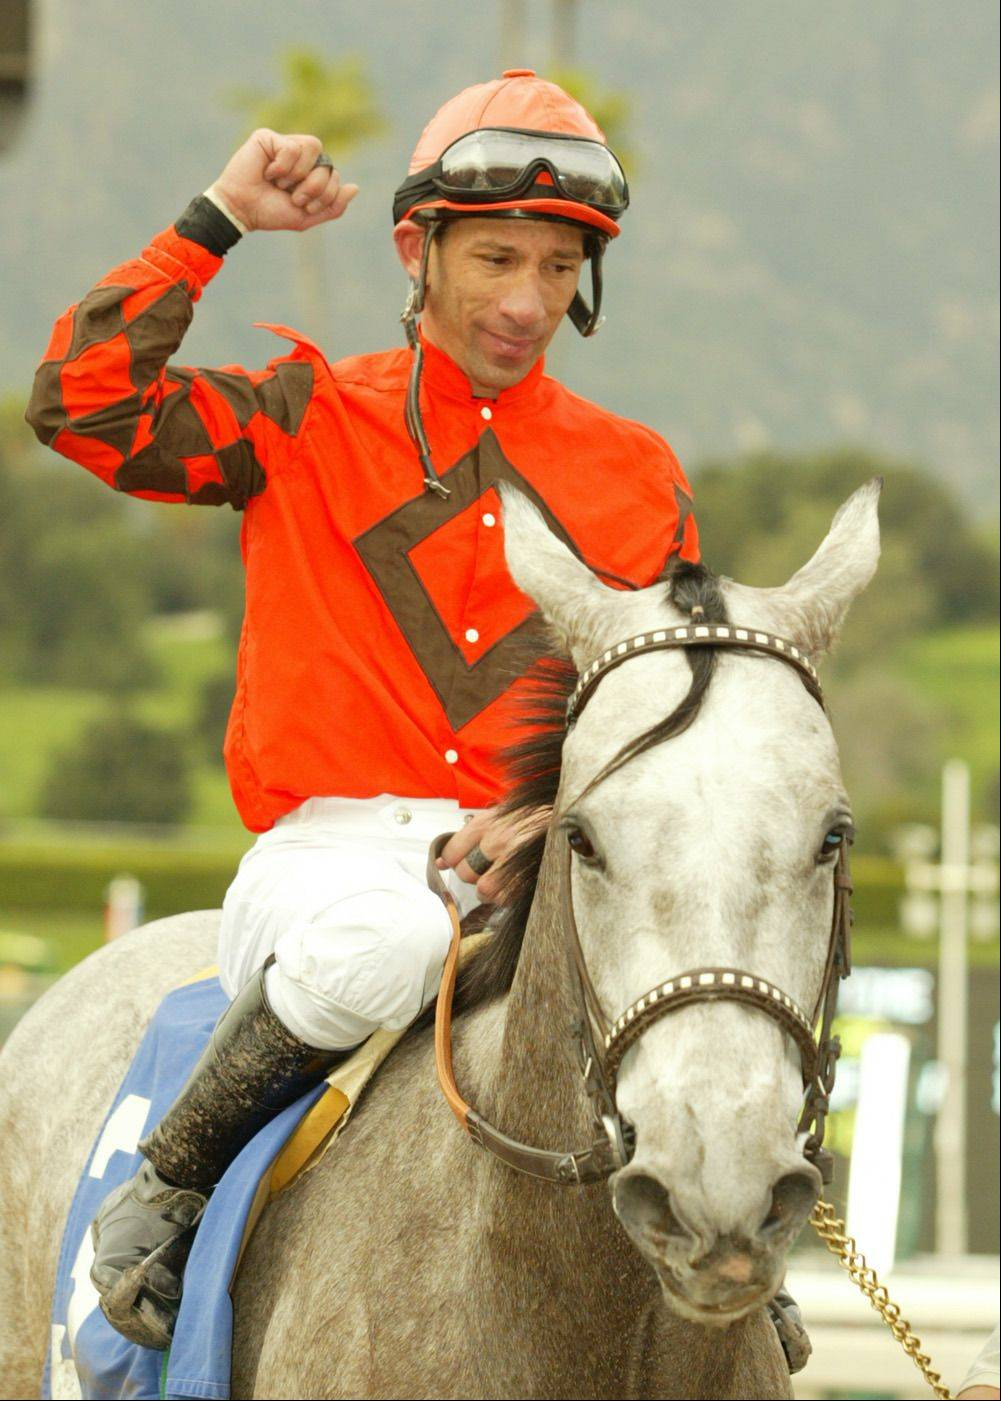 In this photo provided by Benoit Photo, jockey Rene Douglas gestures after riding Grey Misty to victory in the fifth race Thursday, Jan. 13, 2005, at Santa Anita Park in Arcadia, Calif. With the win, Douglas becomes the 122nd rider in North America to win 3,000 races.